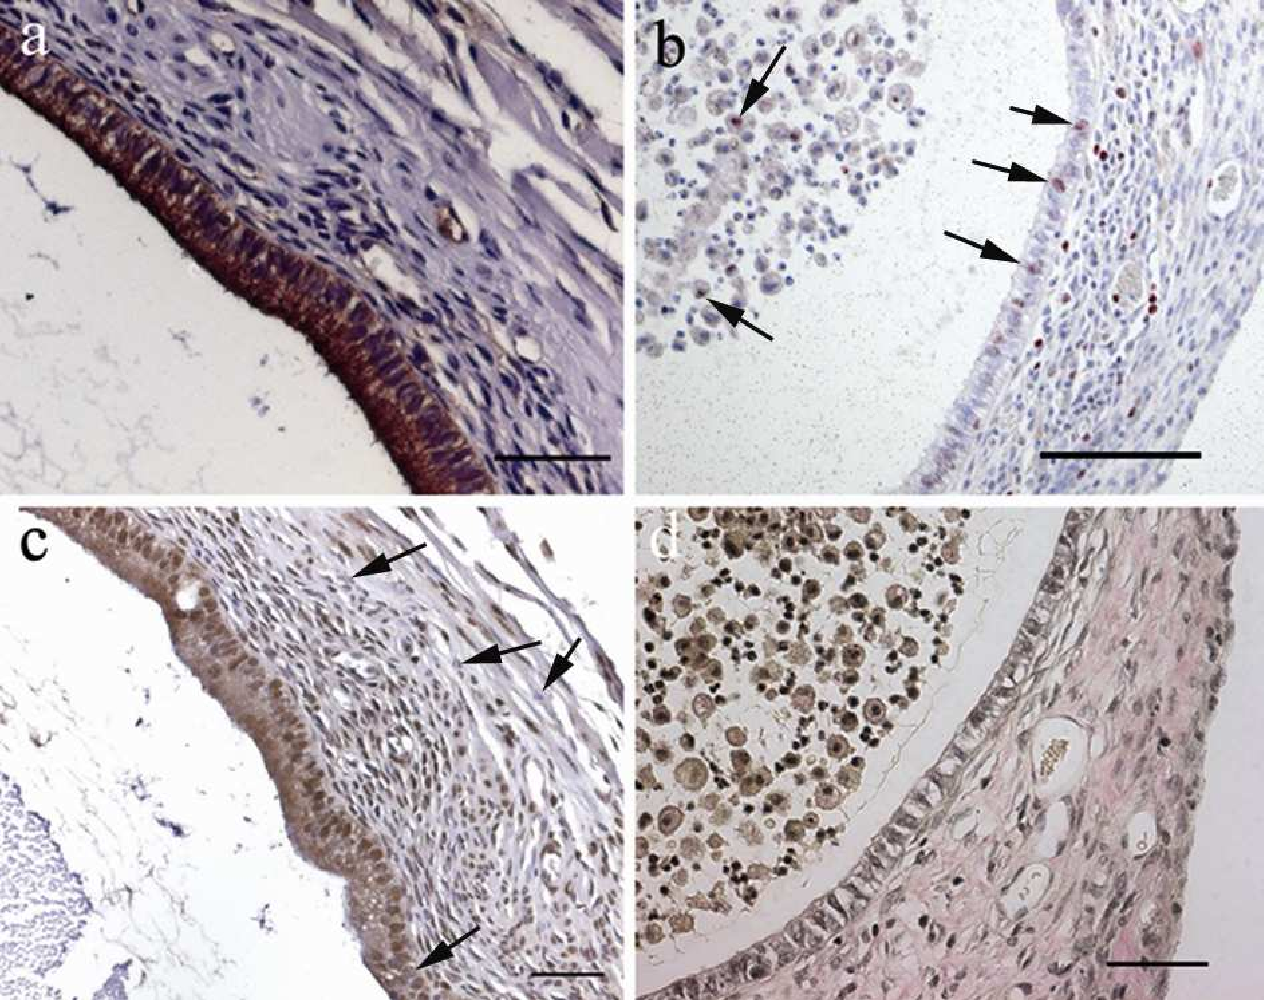 Figure 13: Histological and immunohistochemical examination of EGFP-expressing endometriotic lesions. (a) Anti-cytokeratin staining demonstrates glandular epithelial cells in brown around the cystic lumen. (b) Proliferating cells positive for Ki67 in lesion epithelium, stroma and in lesion lumen content are indicated by red stained nuclei (black arrows). (c) ER-α positive nuclei in epithelium and stroma are stained brown. Some ER-α negative nuclei are exemplarily indicated by the arrows. (d) Weigert-Elastica-van Gieson staining of an endometriotic lesion reveals collagenic connective tissue in magenta. Nuclei are stained black. Scale bar: a, c, d = 50 µm, b = 100 µm.